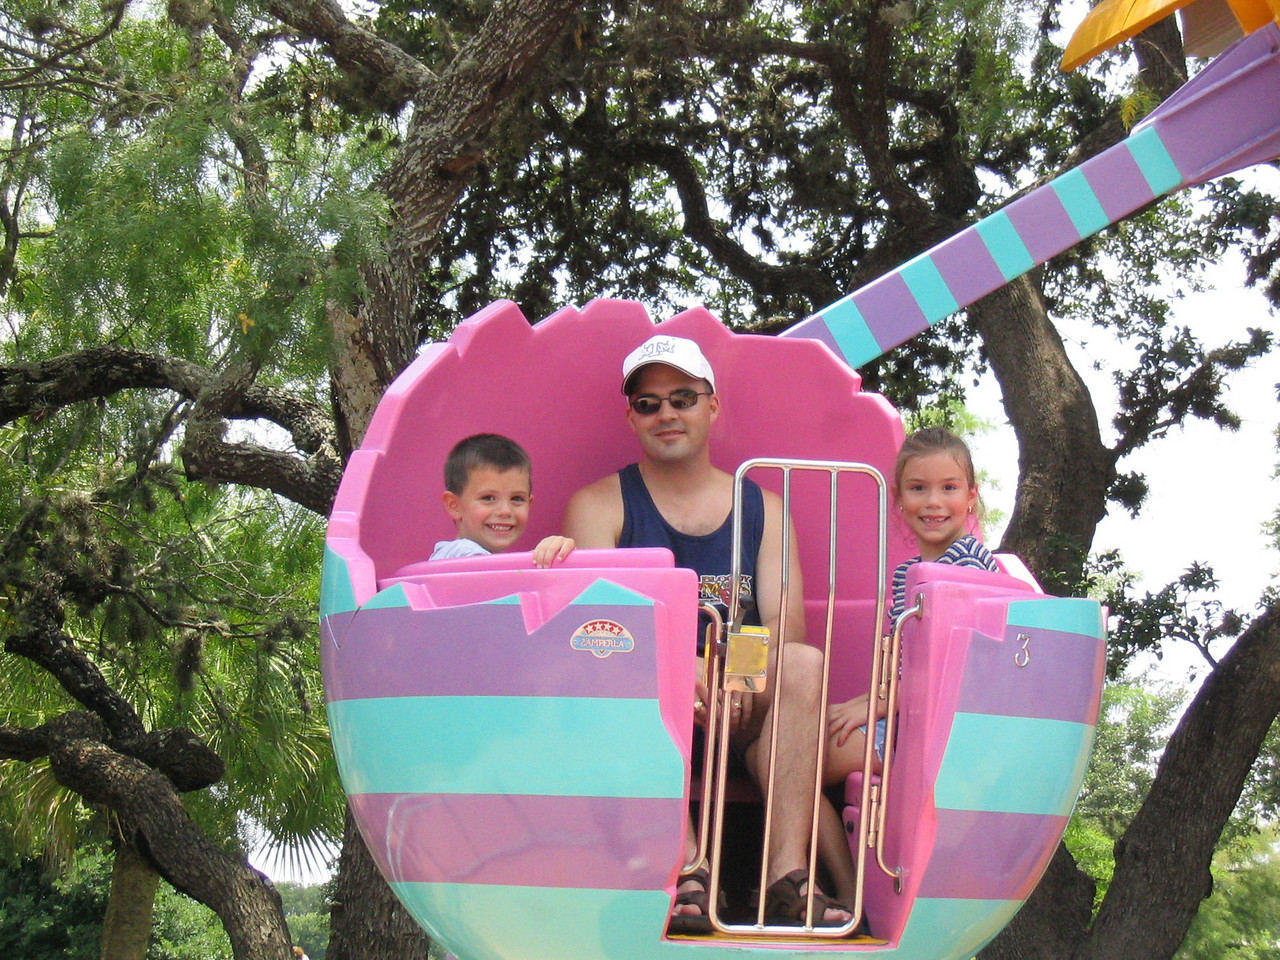 Riding some of the rides at Sea World.